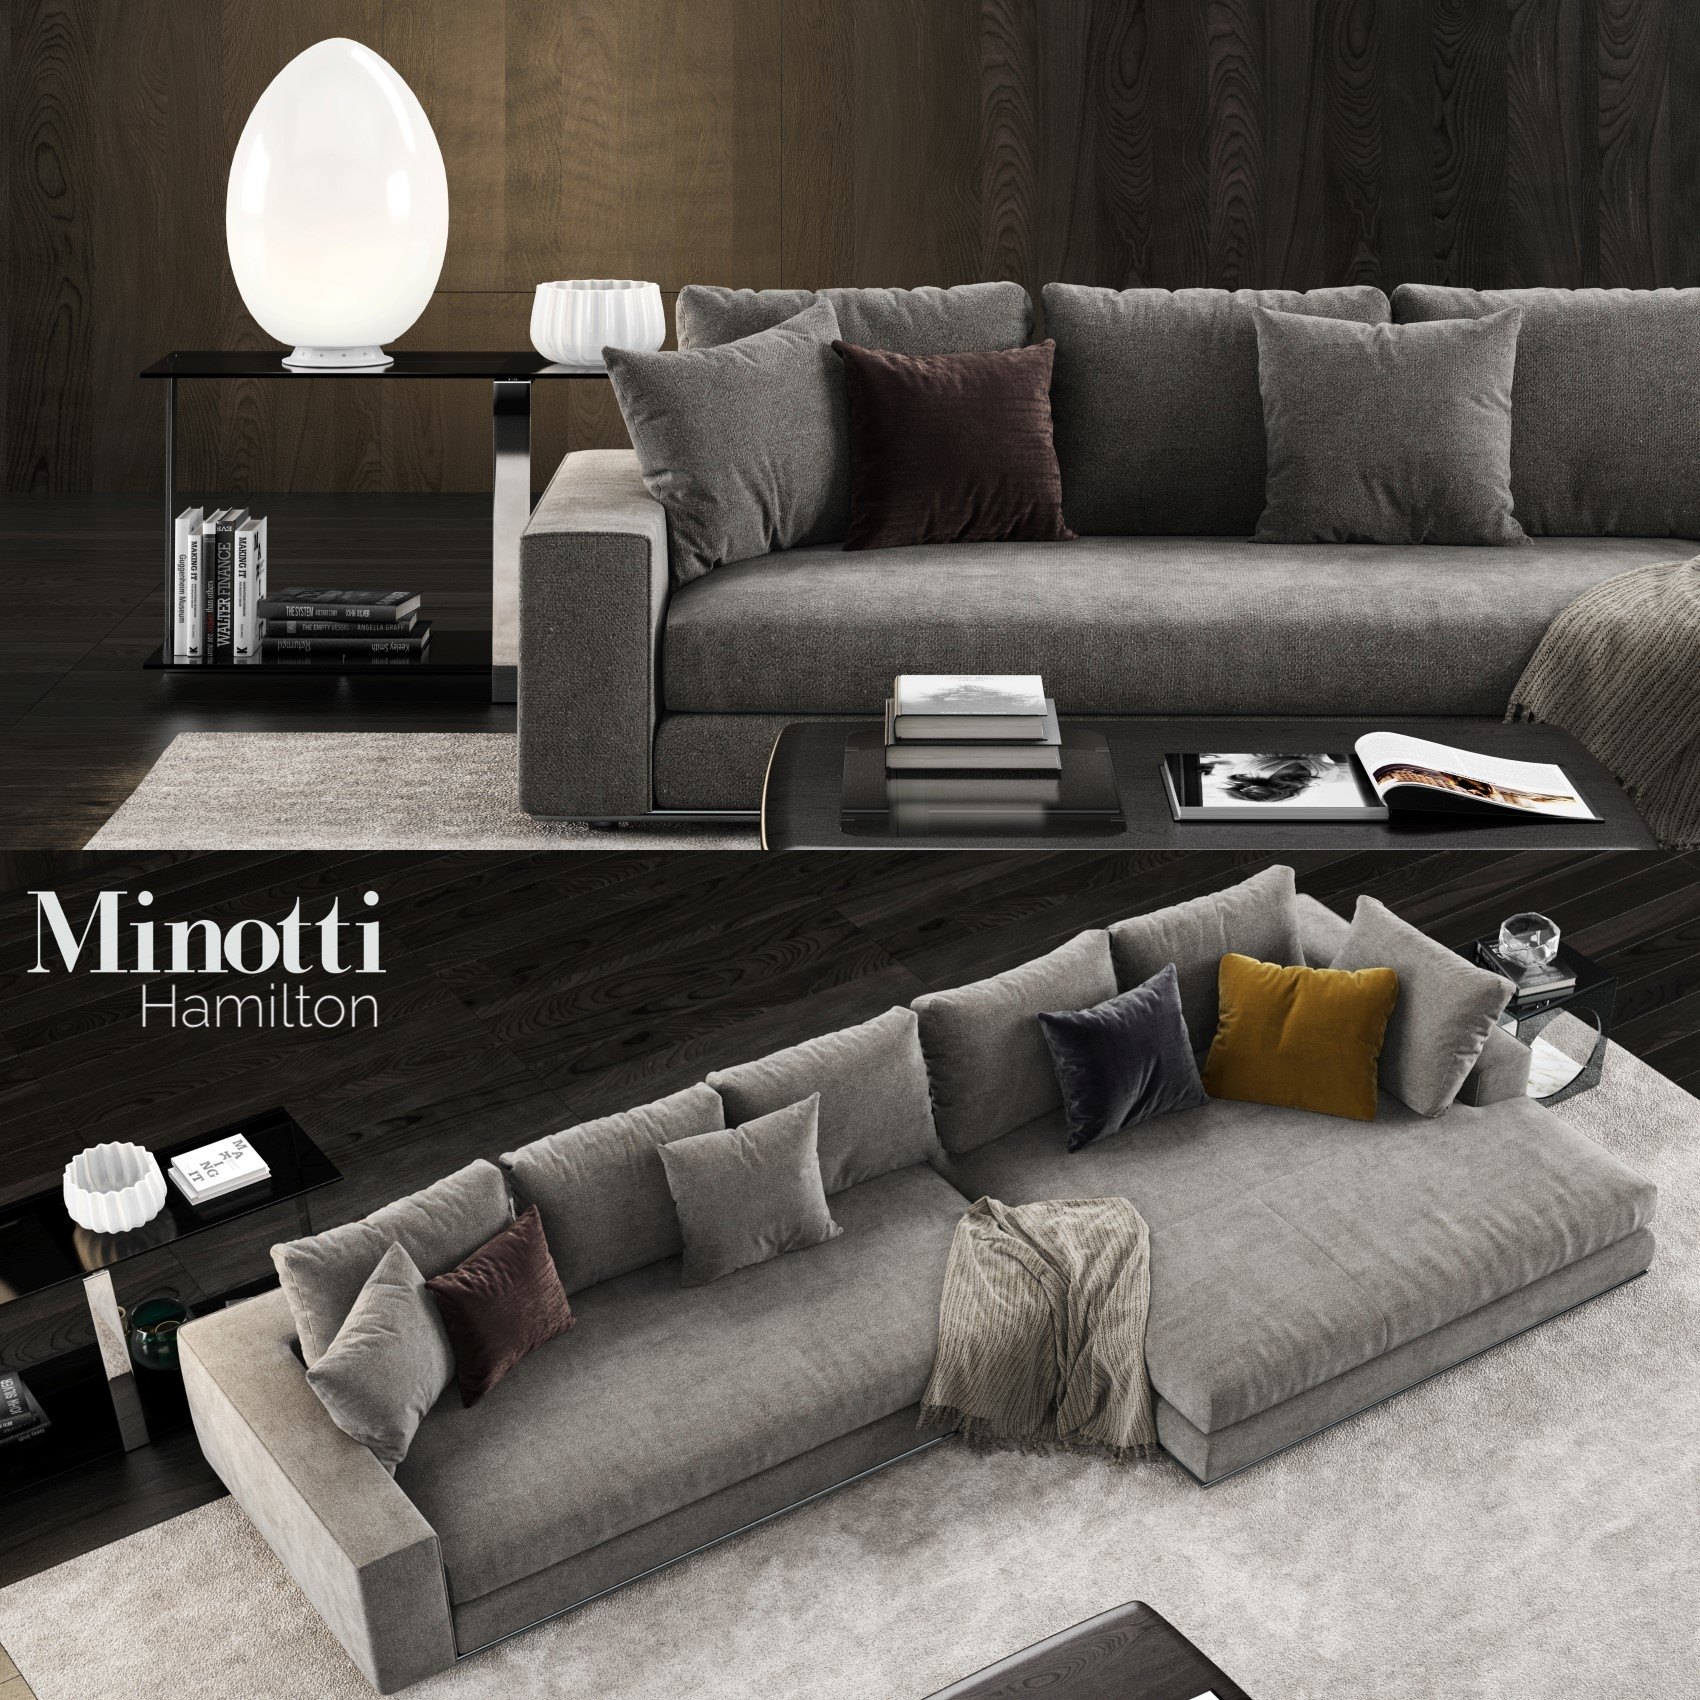 Full Size of Minotti Sofa India Hamilton For Sale Freeman Dimensions Alexander Cost Sleeper Bed Indiana Used Seating System Uk Lawrence 2 3d Modell Turbosquid 1243062 Sofa Minotti Sofa